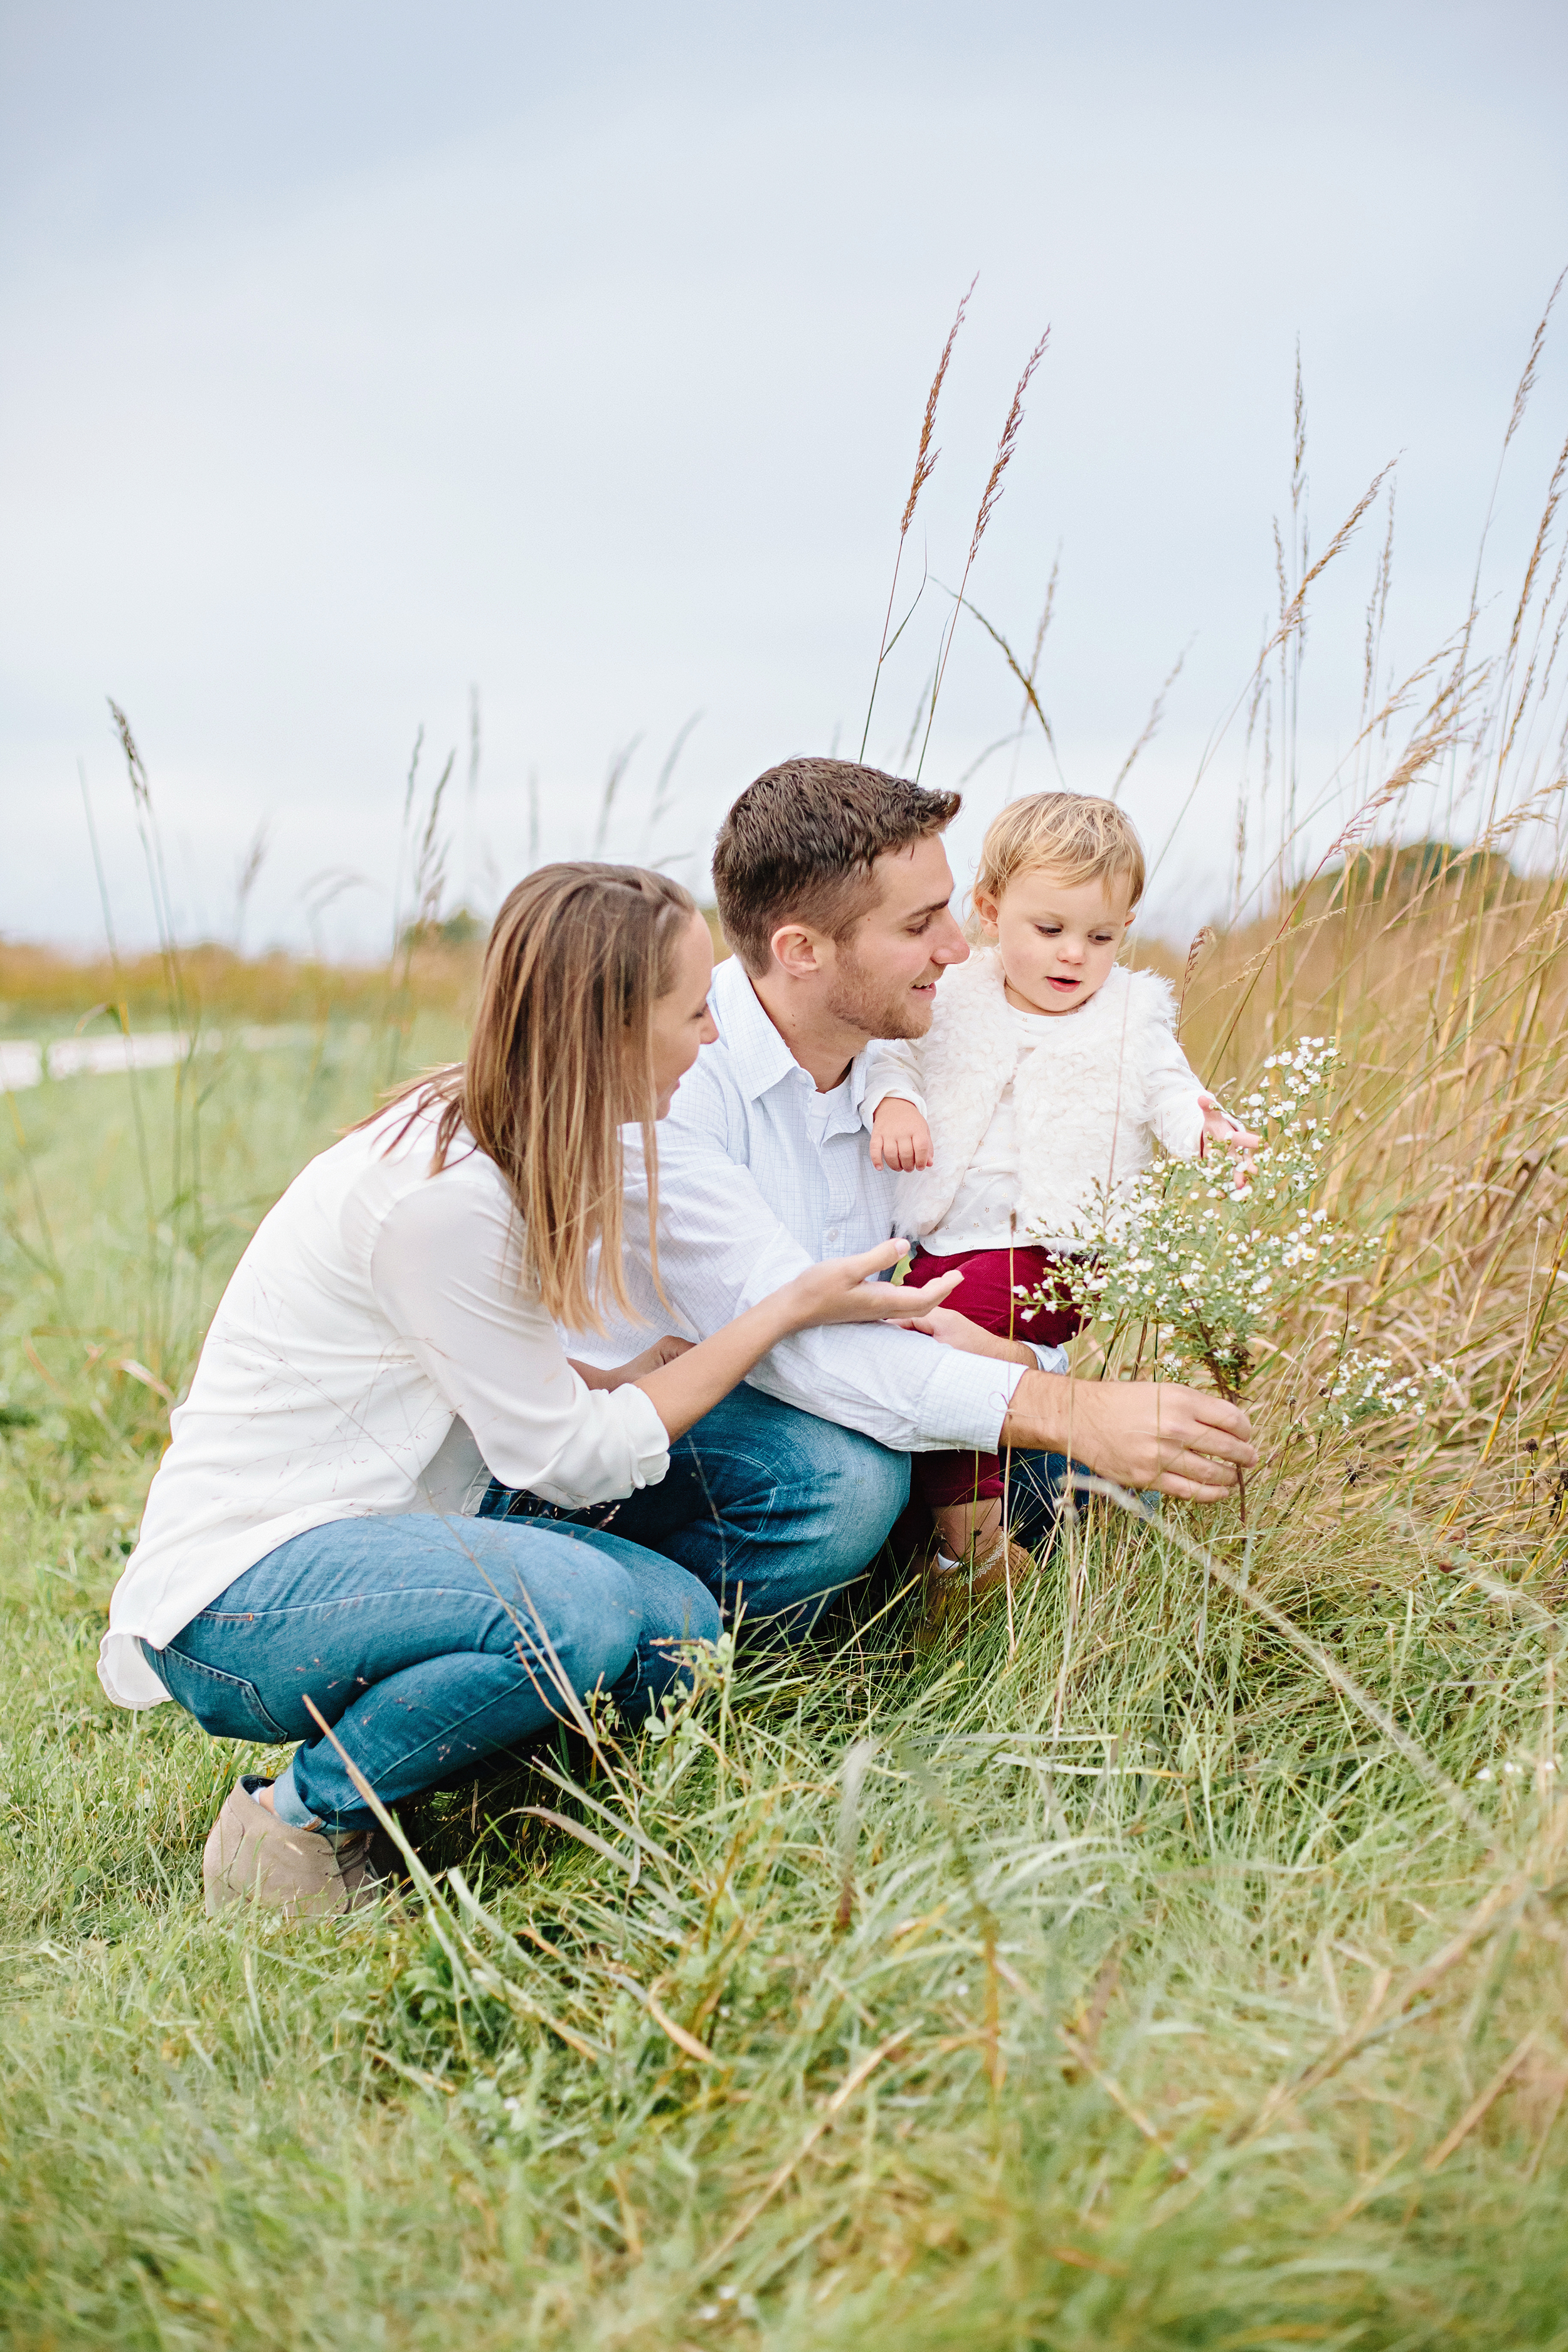 Picking Flowers   Family Photography   Elgin, Illinois   Cassie Schott Photography